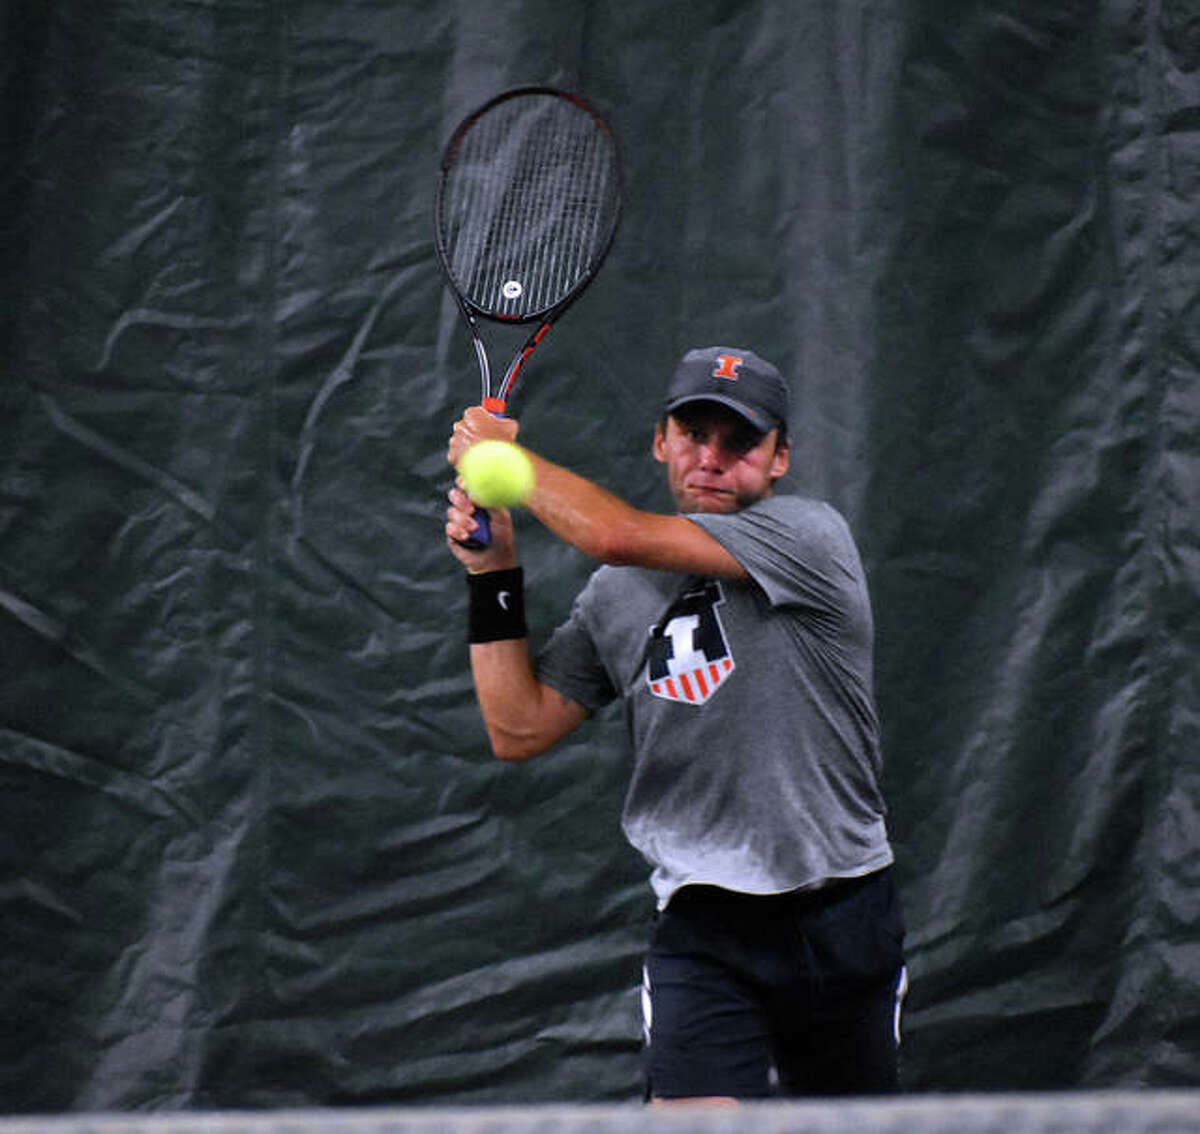 Zeke Clark smashes a backhand return during his singles championship match of the Edwardsville Open on Sunday.